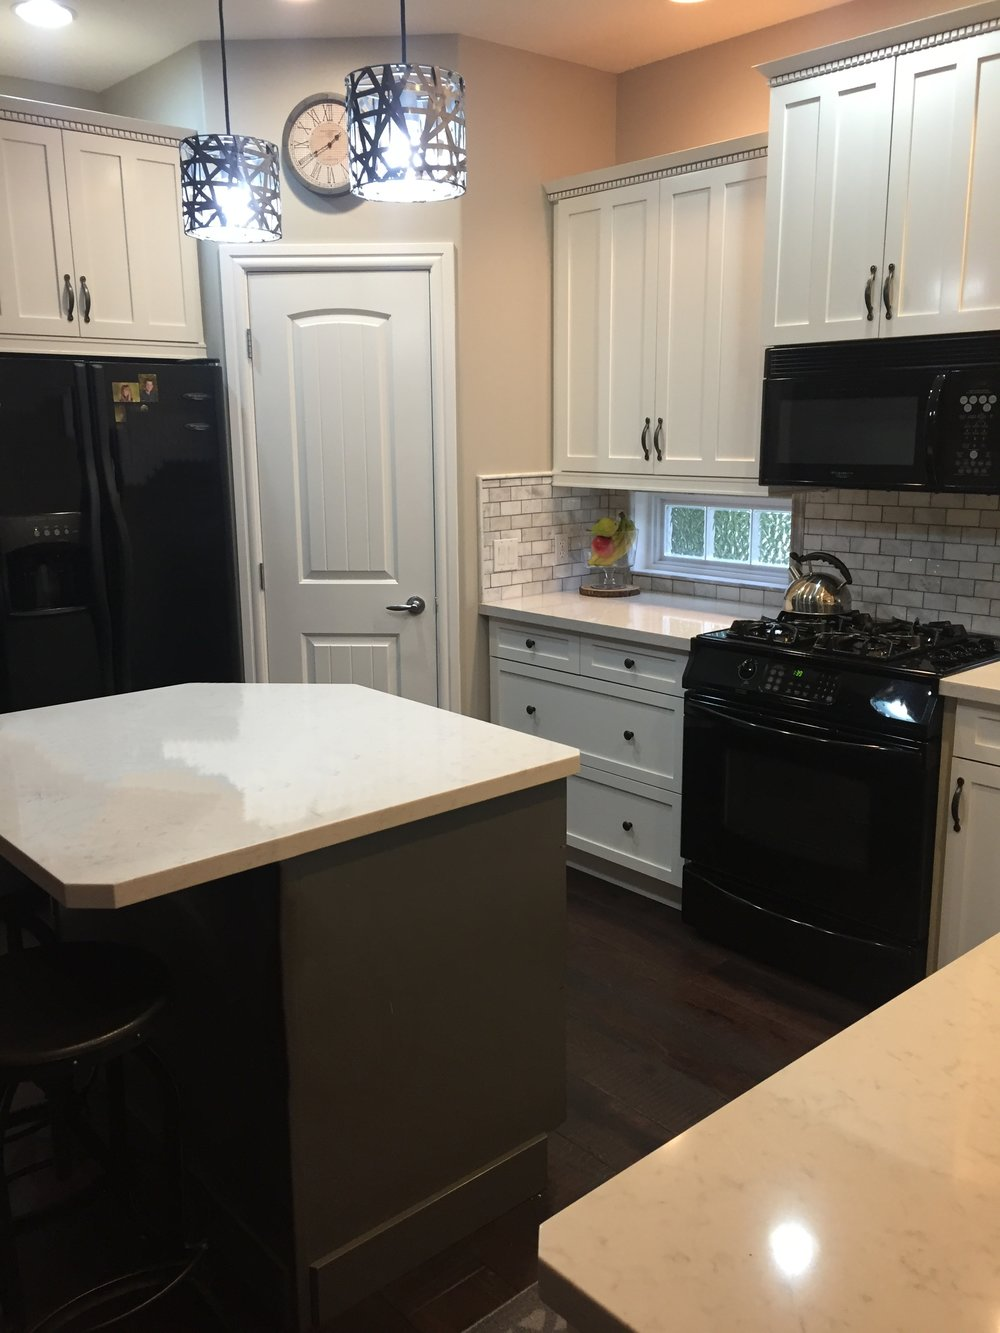 Painted cabinets, light main cabinets with darker island, marble backsplash, quartz countertops